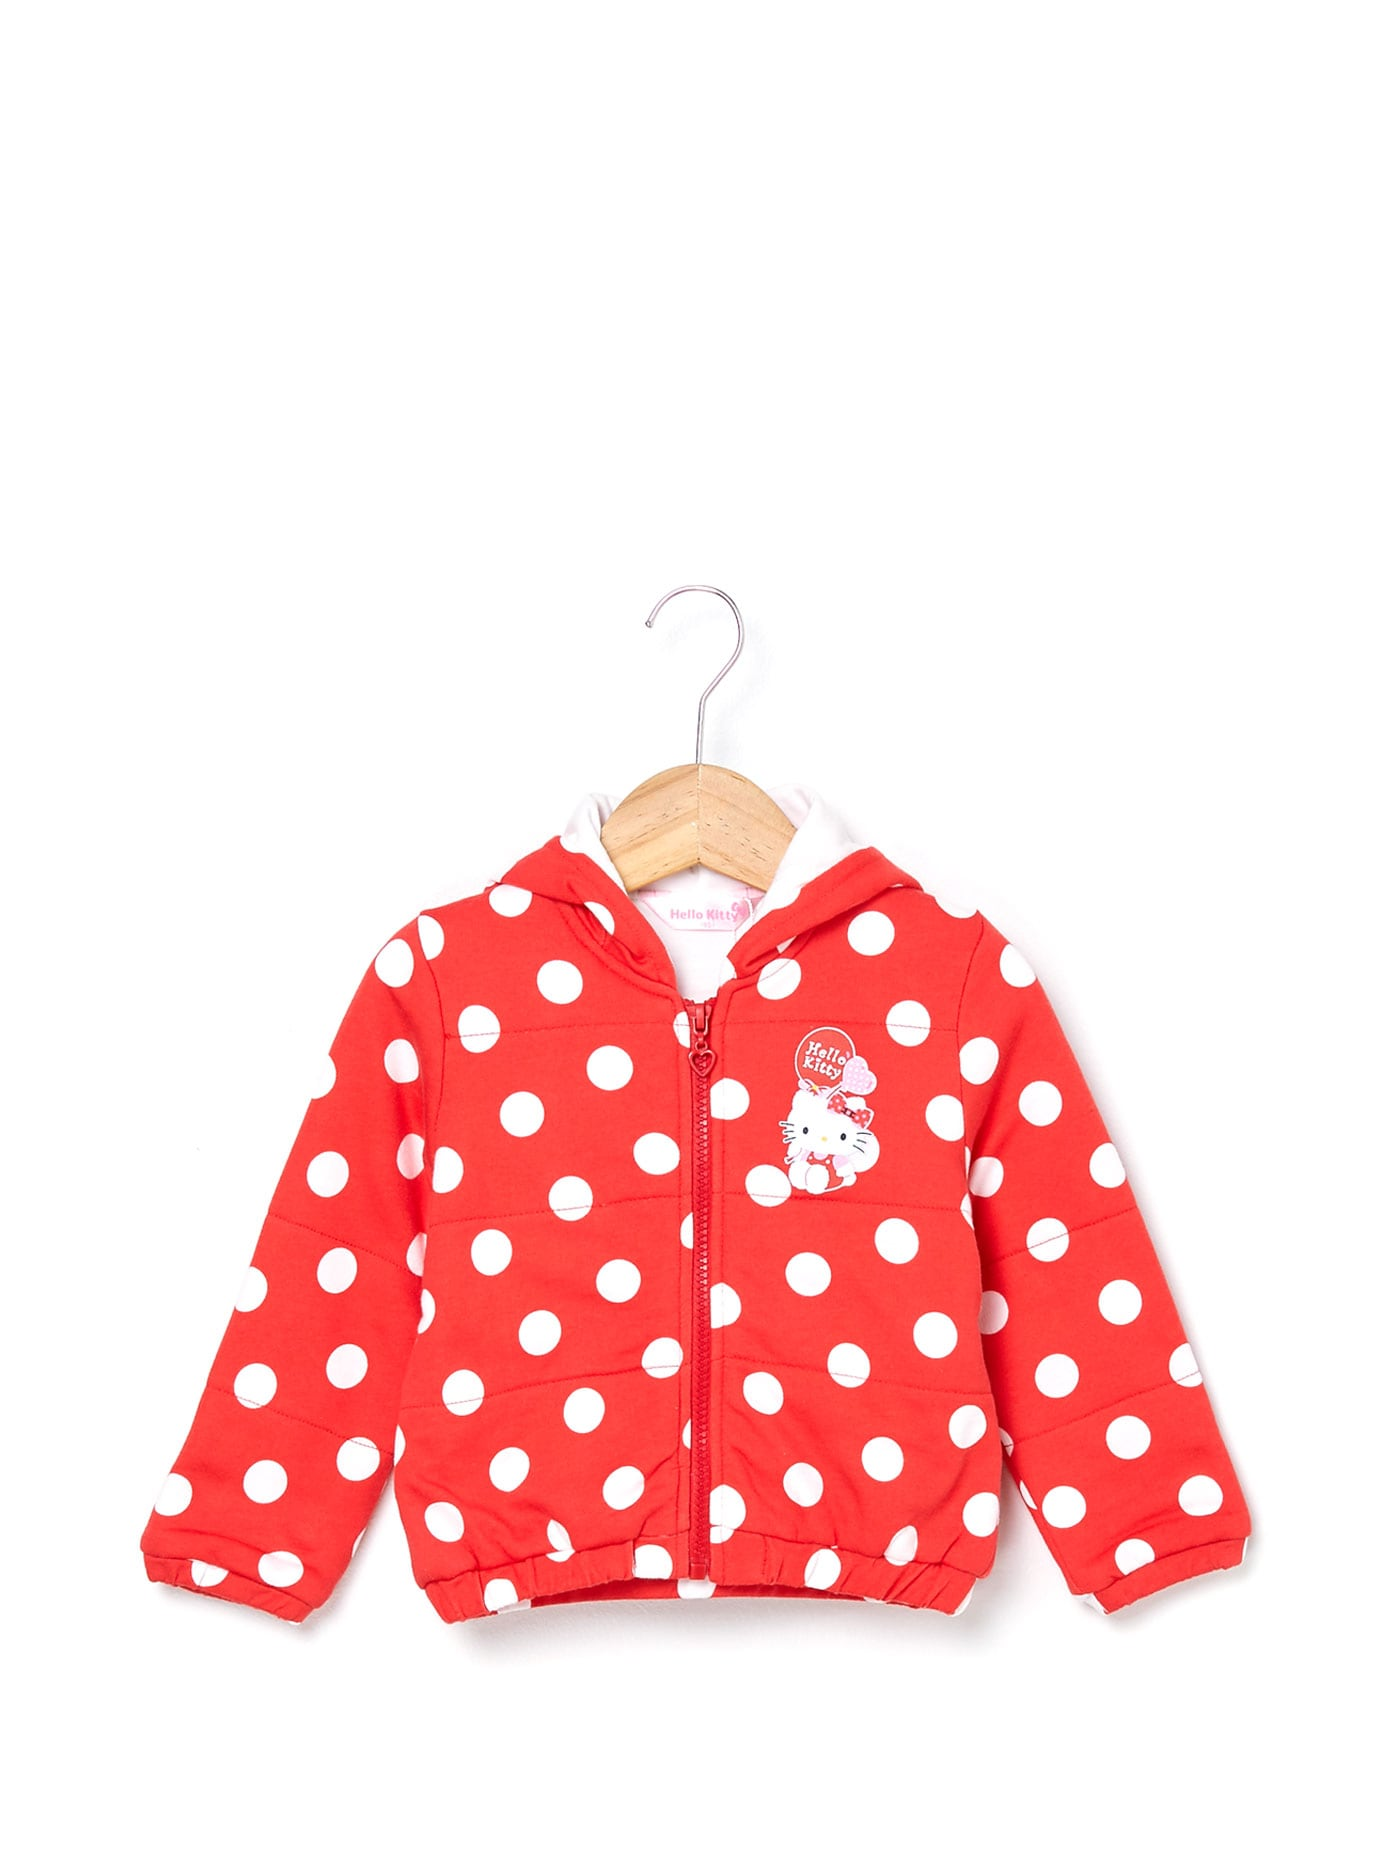 2b920a1bb Hello Kitty Girl's Sweater